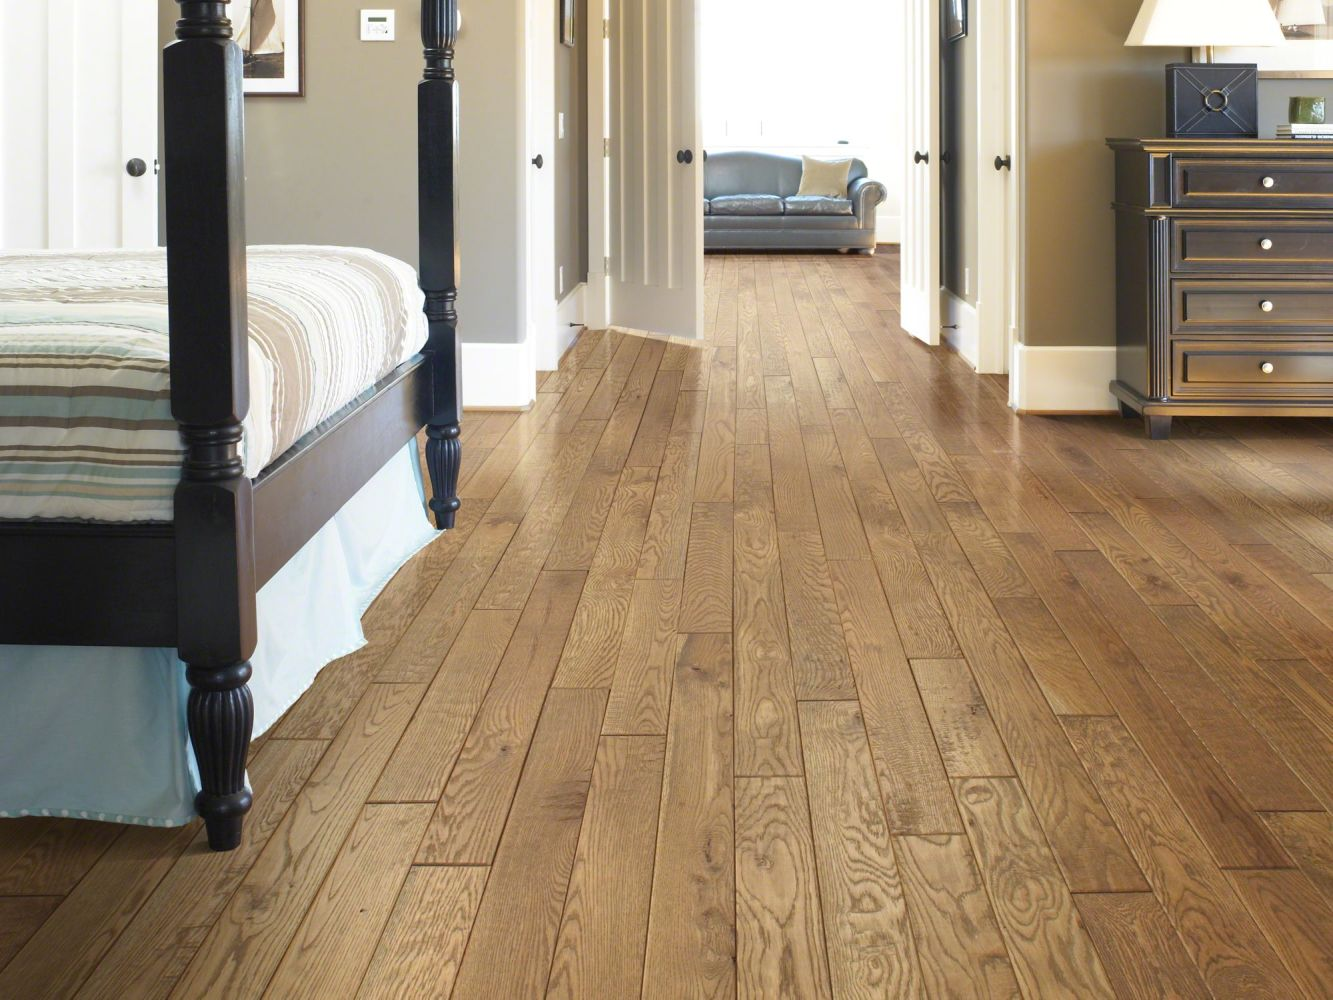 Shaw Floors Home Fn Gold Hardwood Valley View Wheat Field 00150_HW519